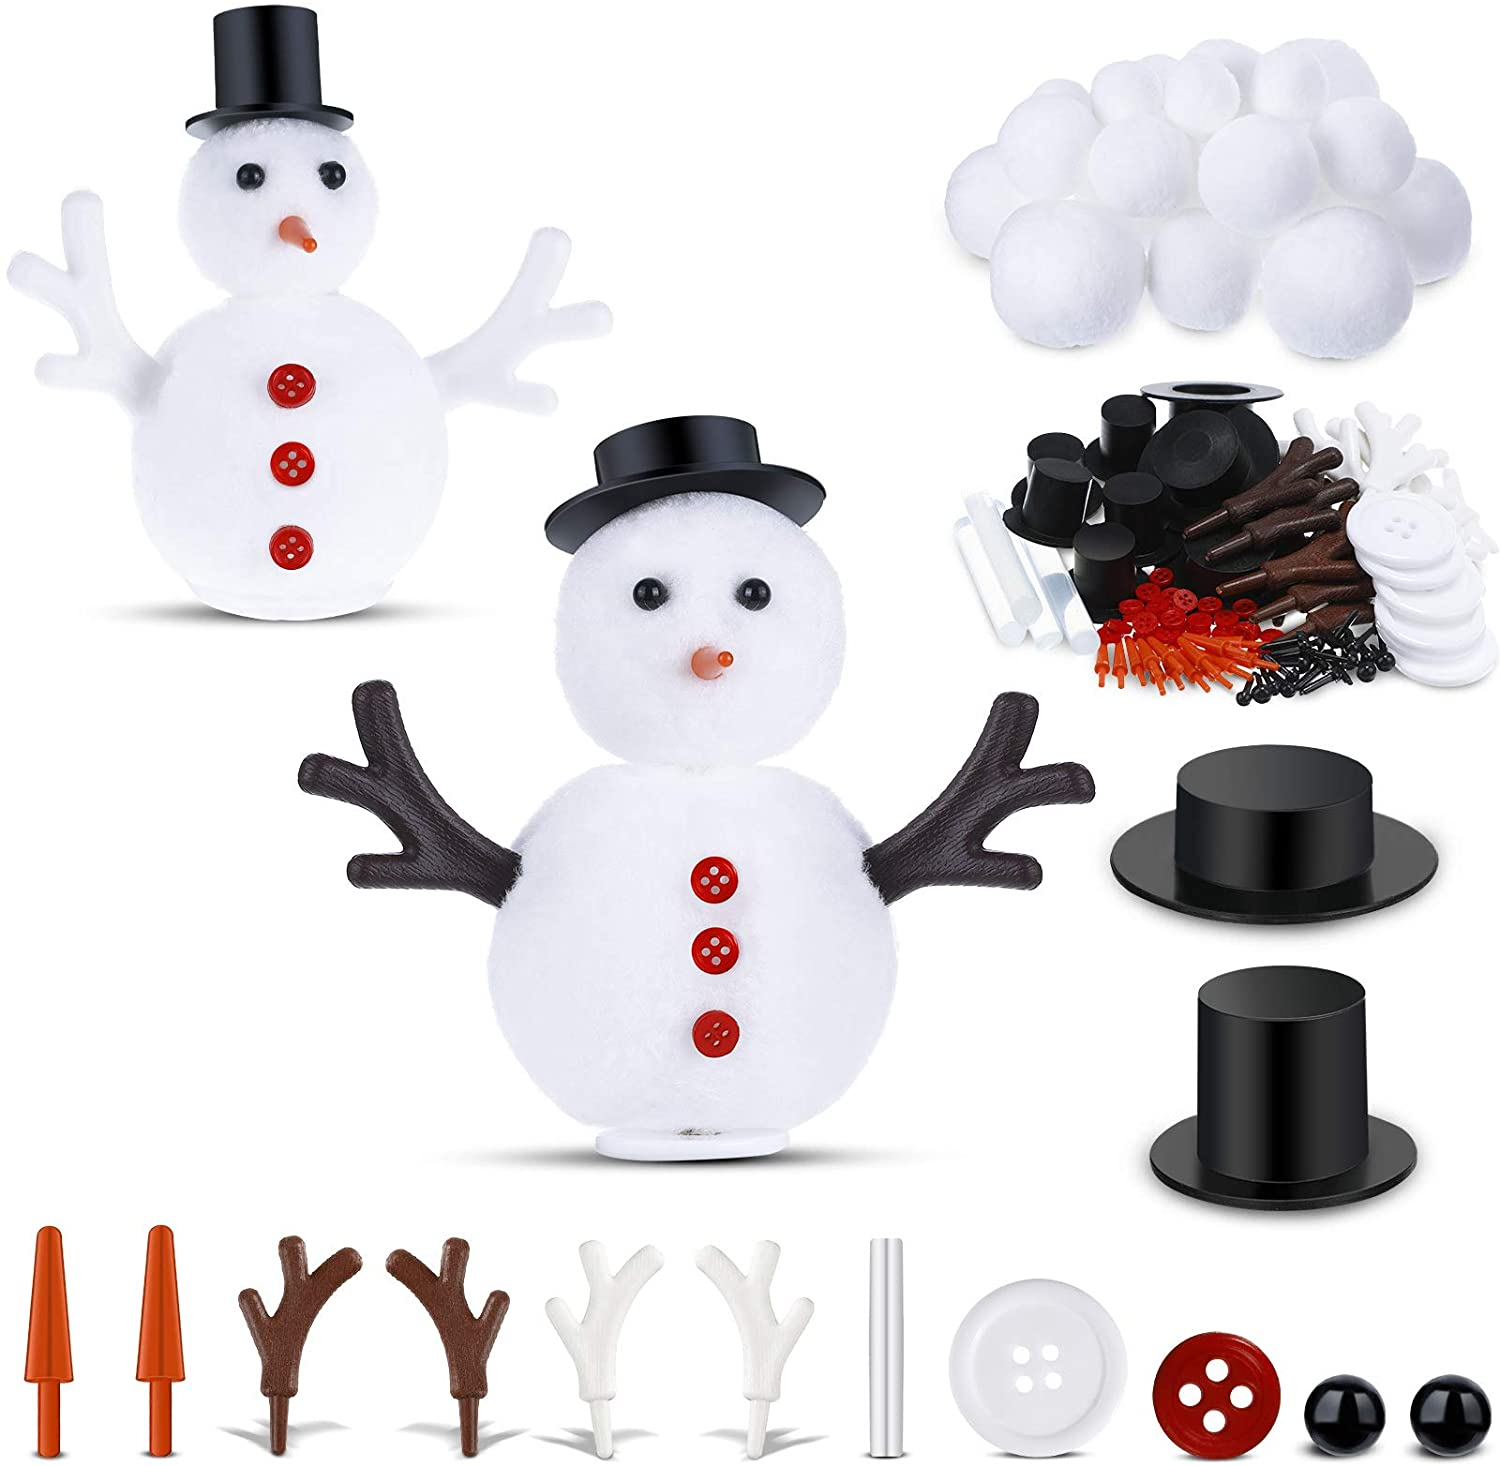 WILLBOND 138 Pieces DIY Christmas Snowman Kit Includes Mini Black Top Hats Carrot Noses Tiny Red Buttons and Mini Buckhorn for Christmas Crafting Sewing Christmas Party Supplies